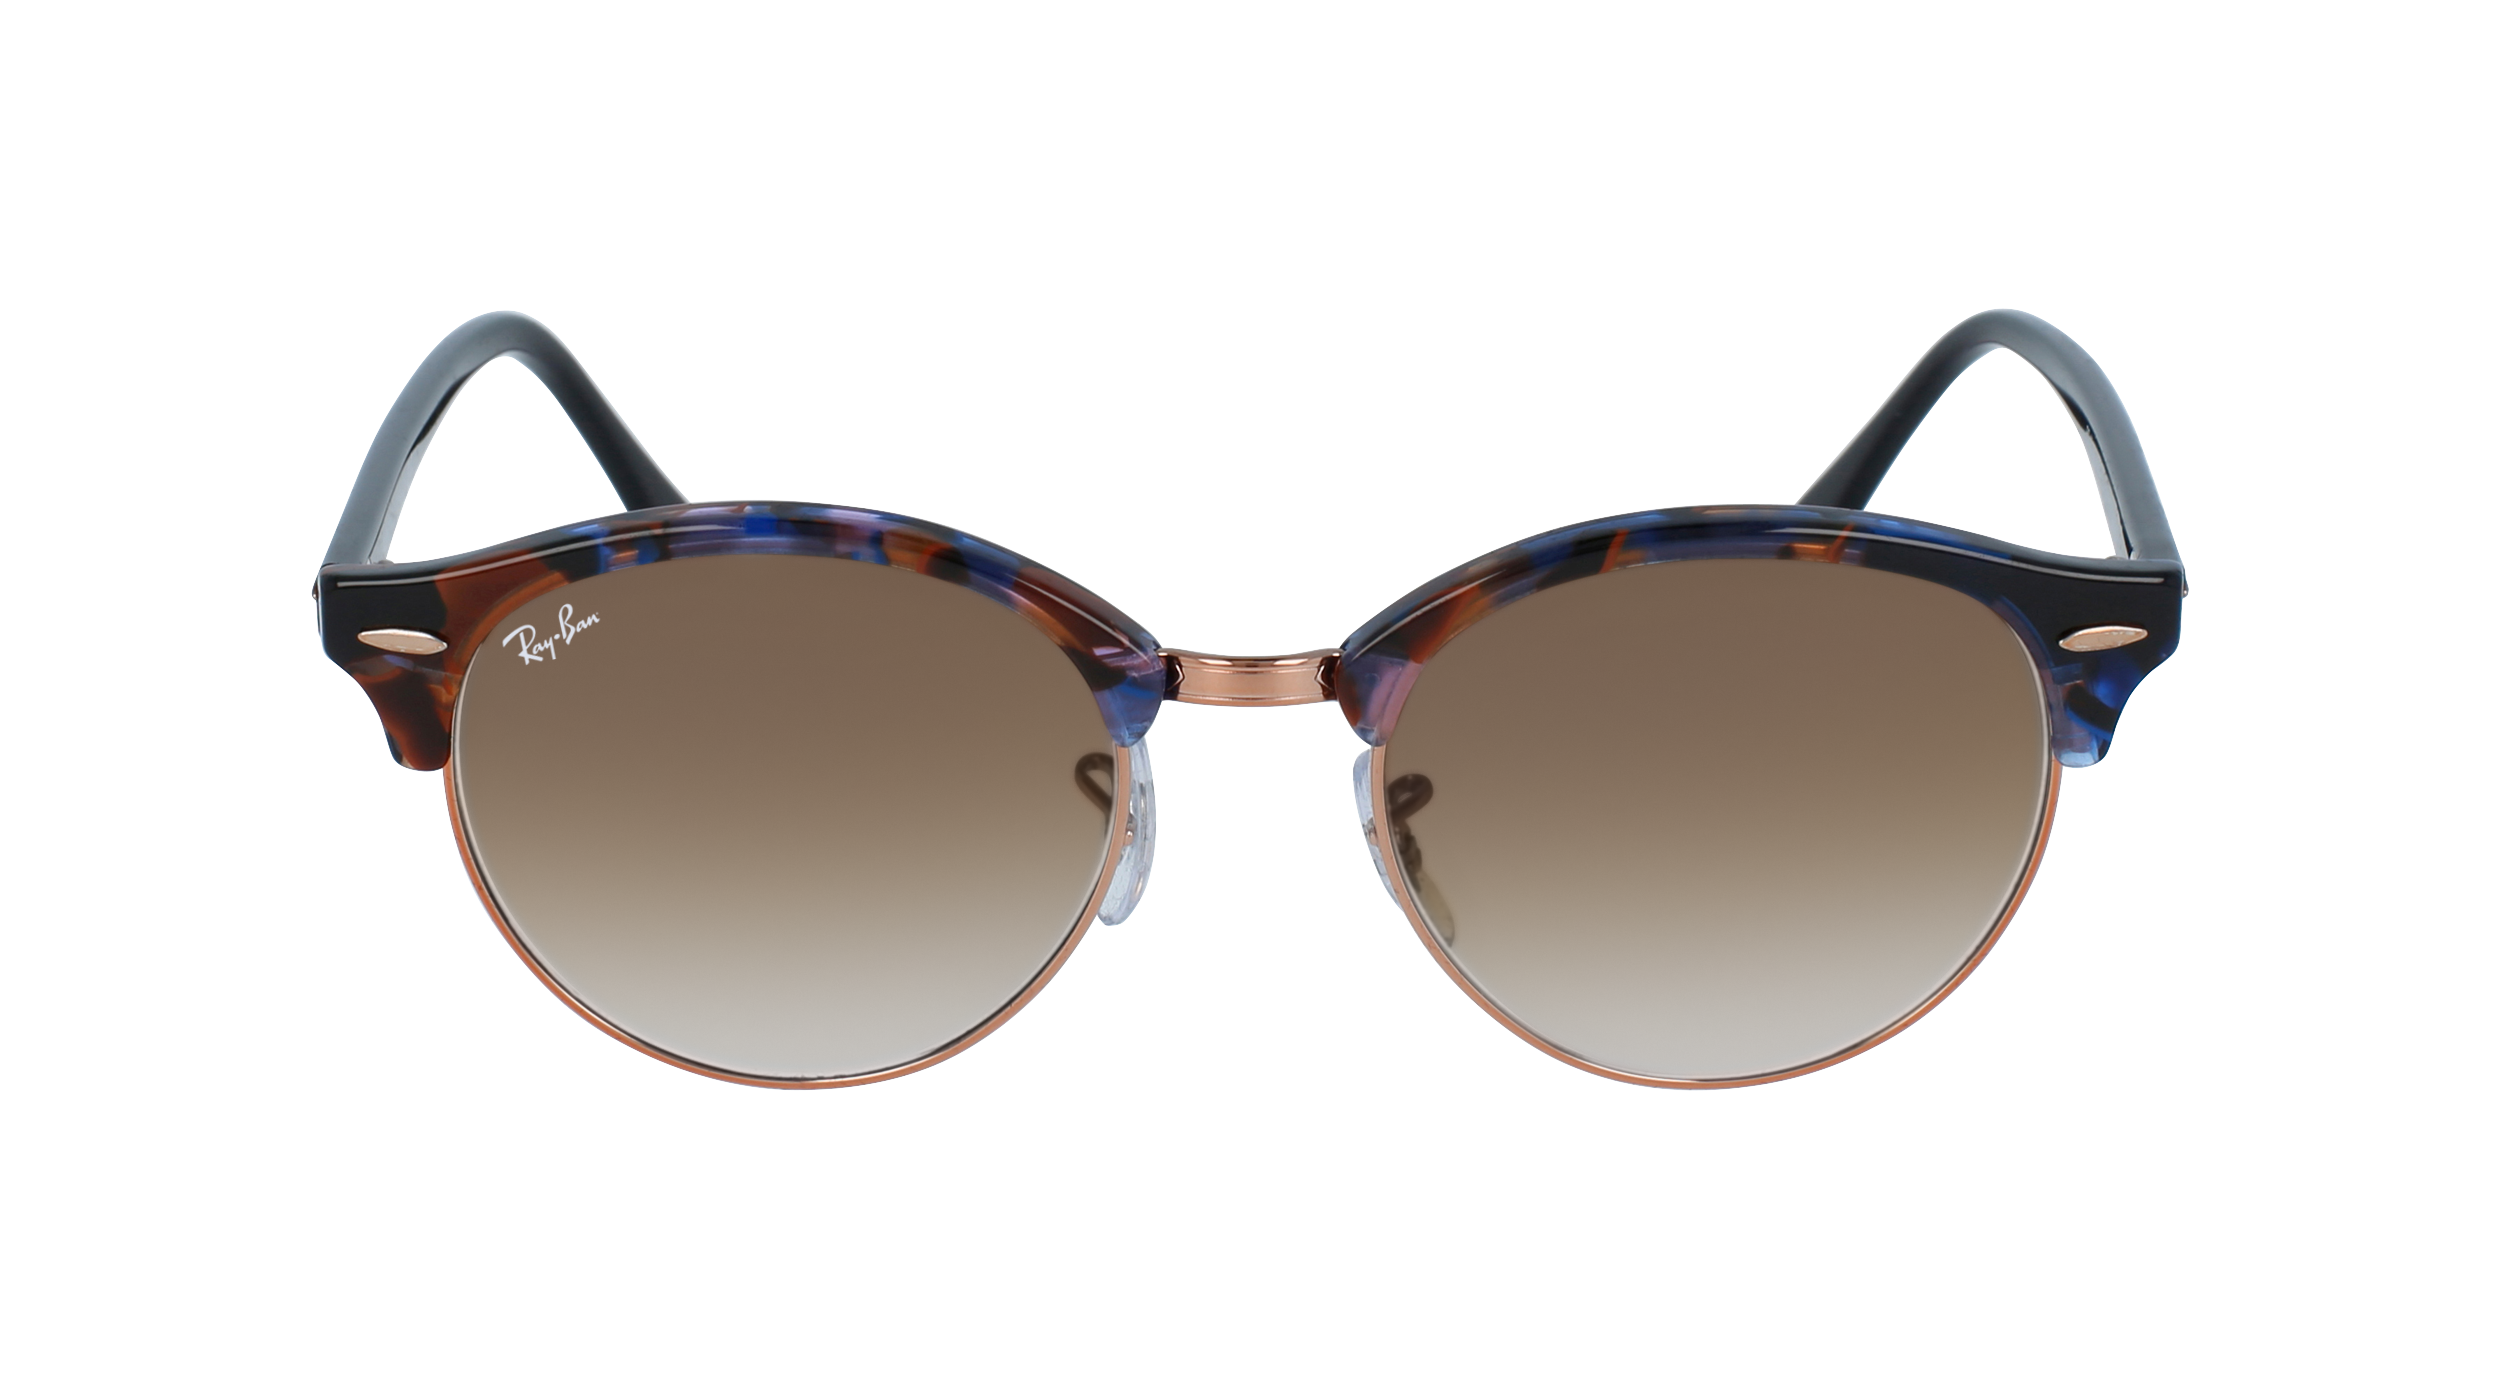 498140 Rayban Clubroundrb4246 S 125651 51 19 145 2500x1400 Front